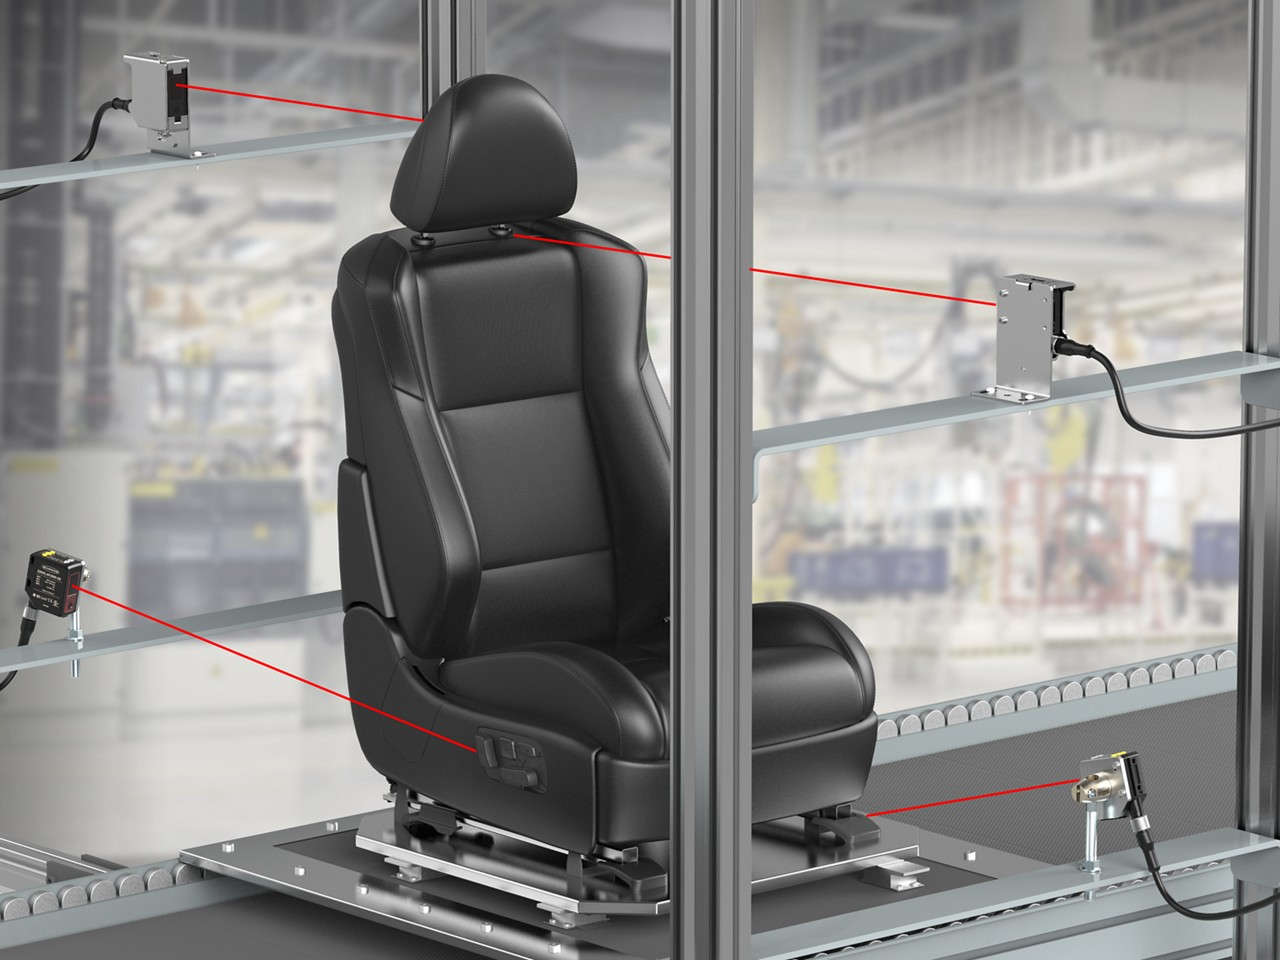 The Q5X sensor detects black components on a black seat